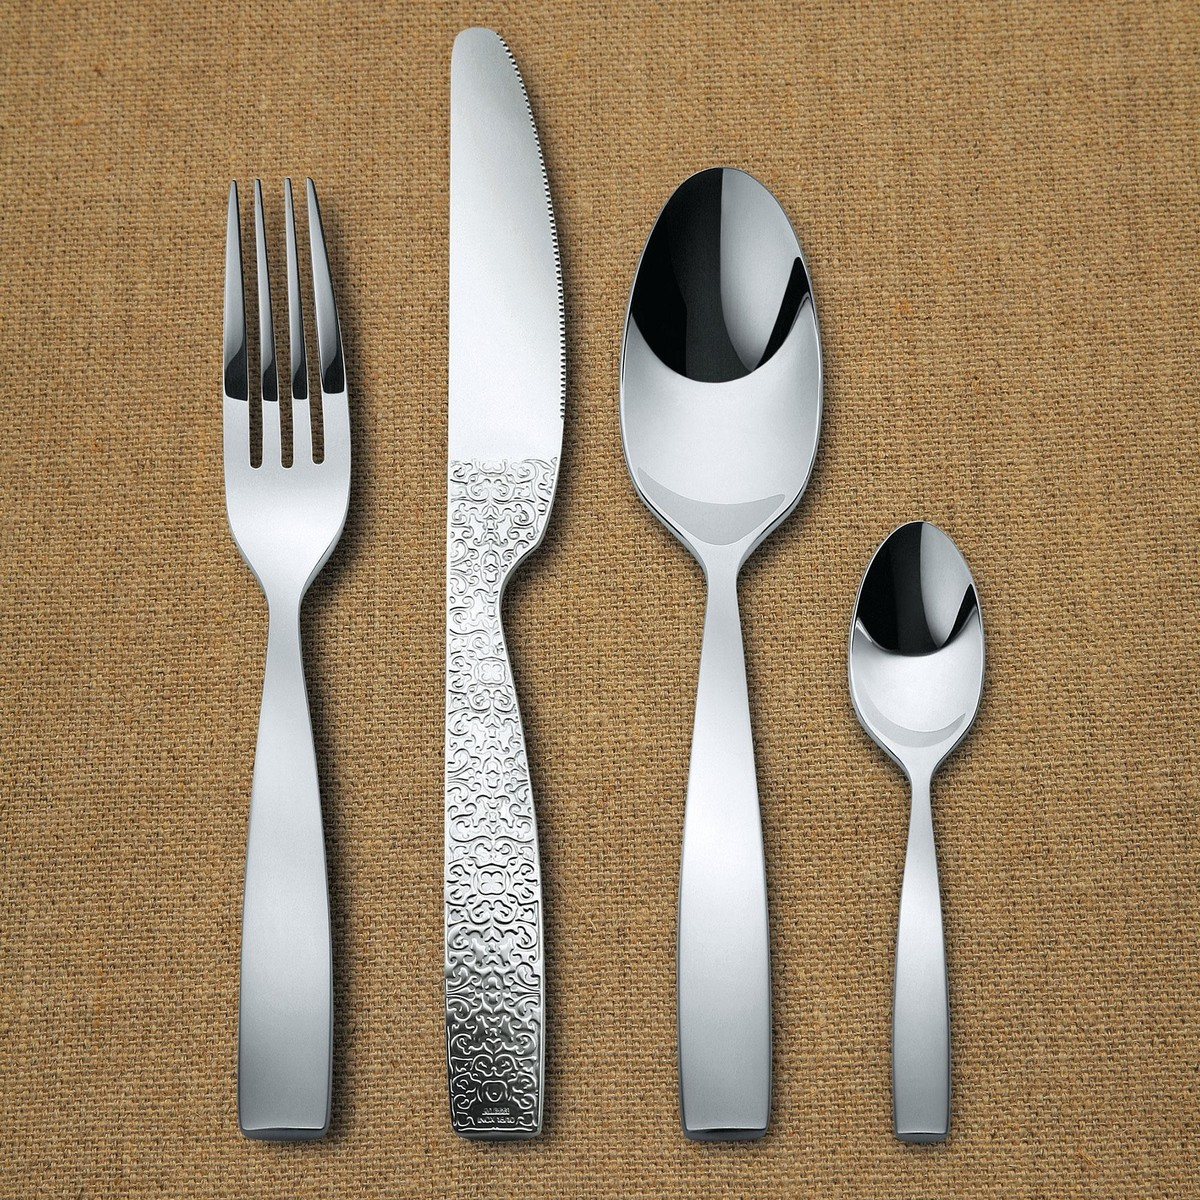 Alessi Silverware Dressed Cutlery Set 24 Piece Alessi Ambientedirect